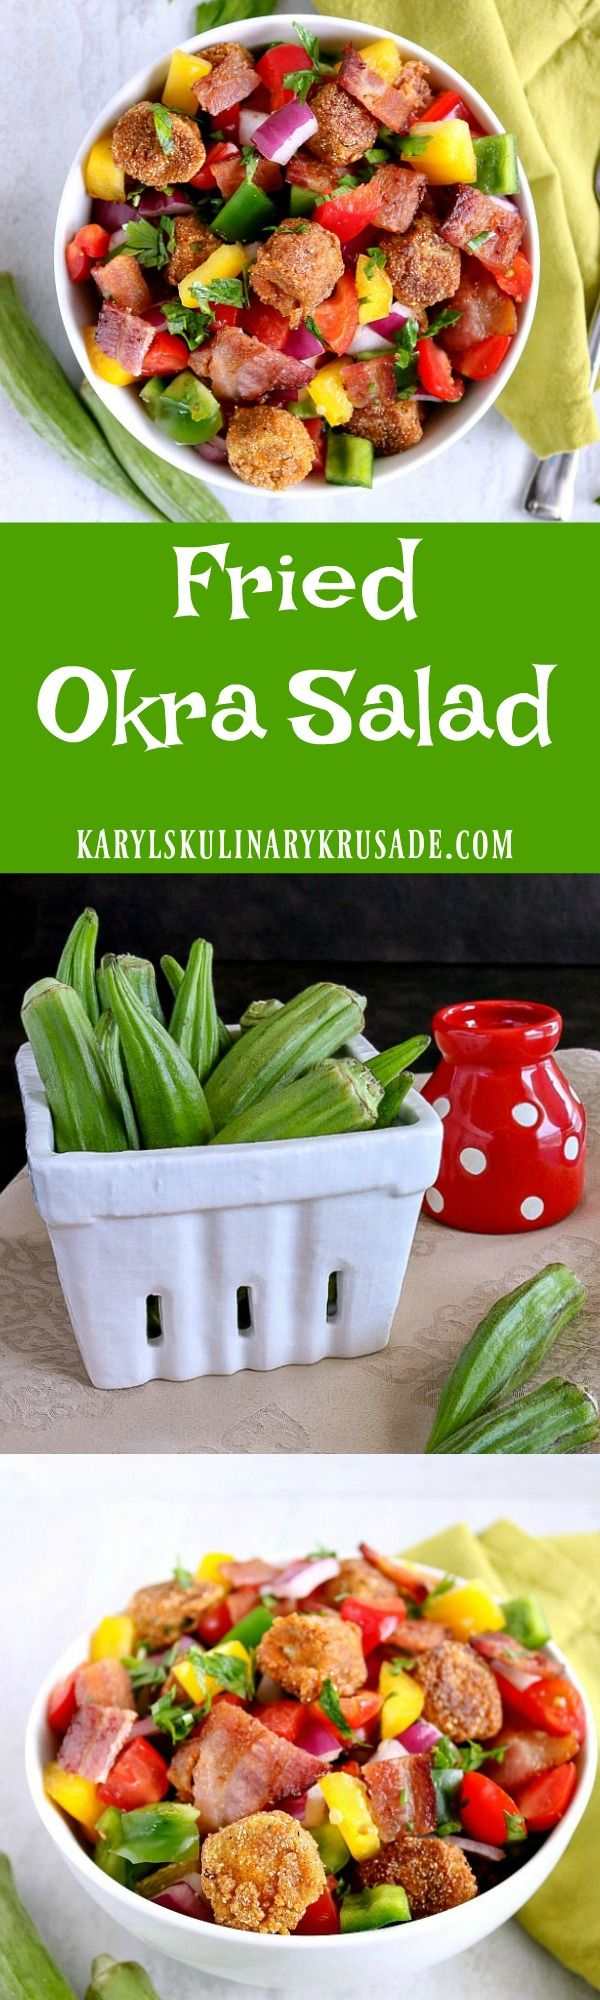 If you think you don't like okra, you haven't tried it fried! My Fried Okra Salad combines crunchy pan-fried okra, peppers, onions, tomatoes & bacon to create a wonderful mix of flavors, textures and colors. Finish with a drizzle of balsamic vinegar for a wonderful dish your family will love